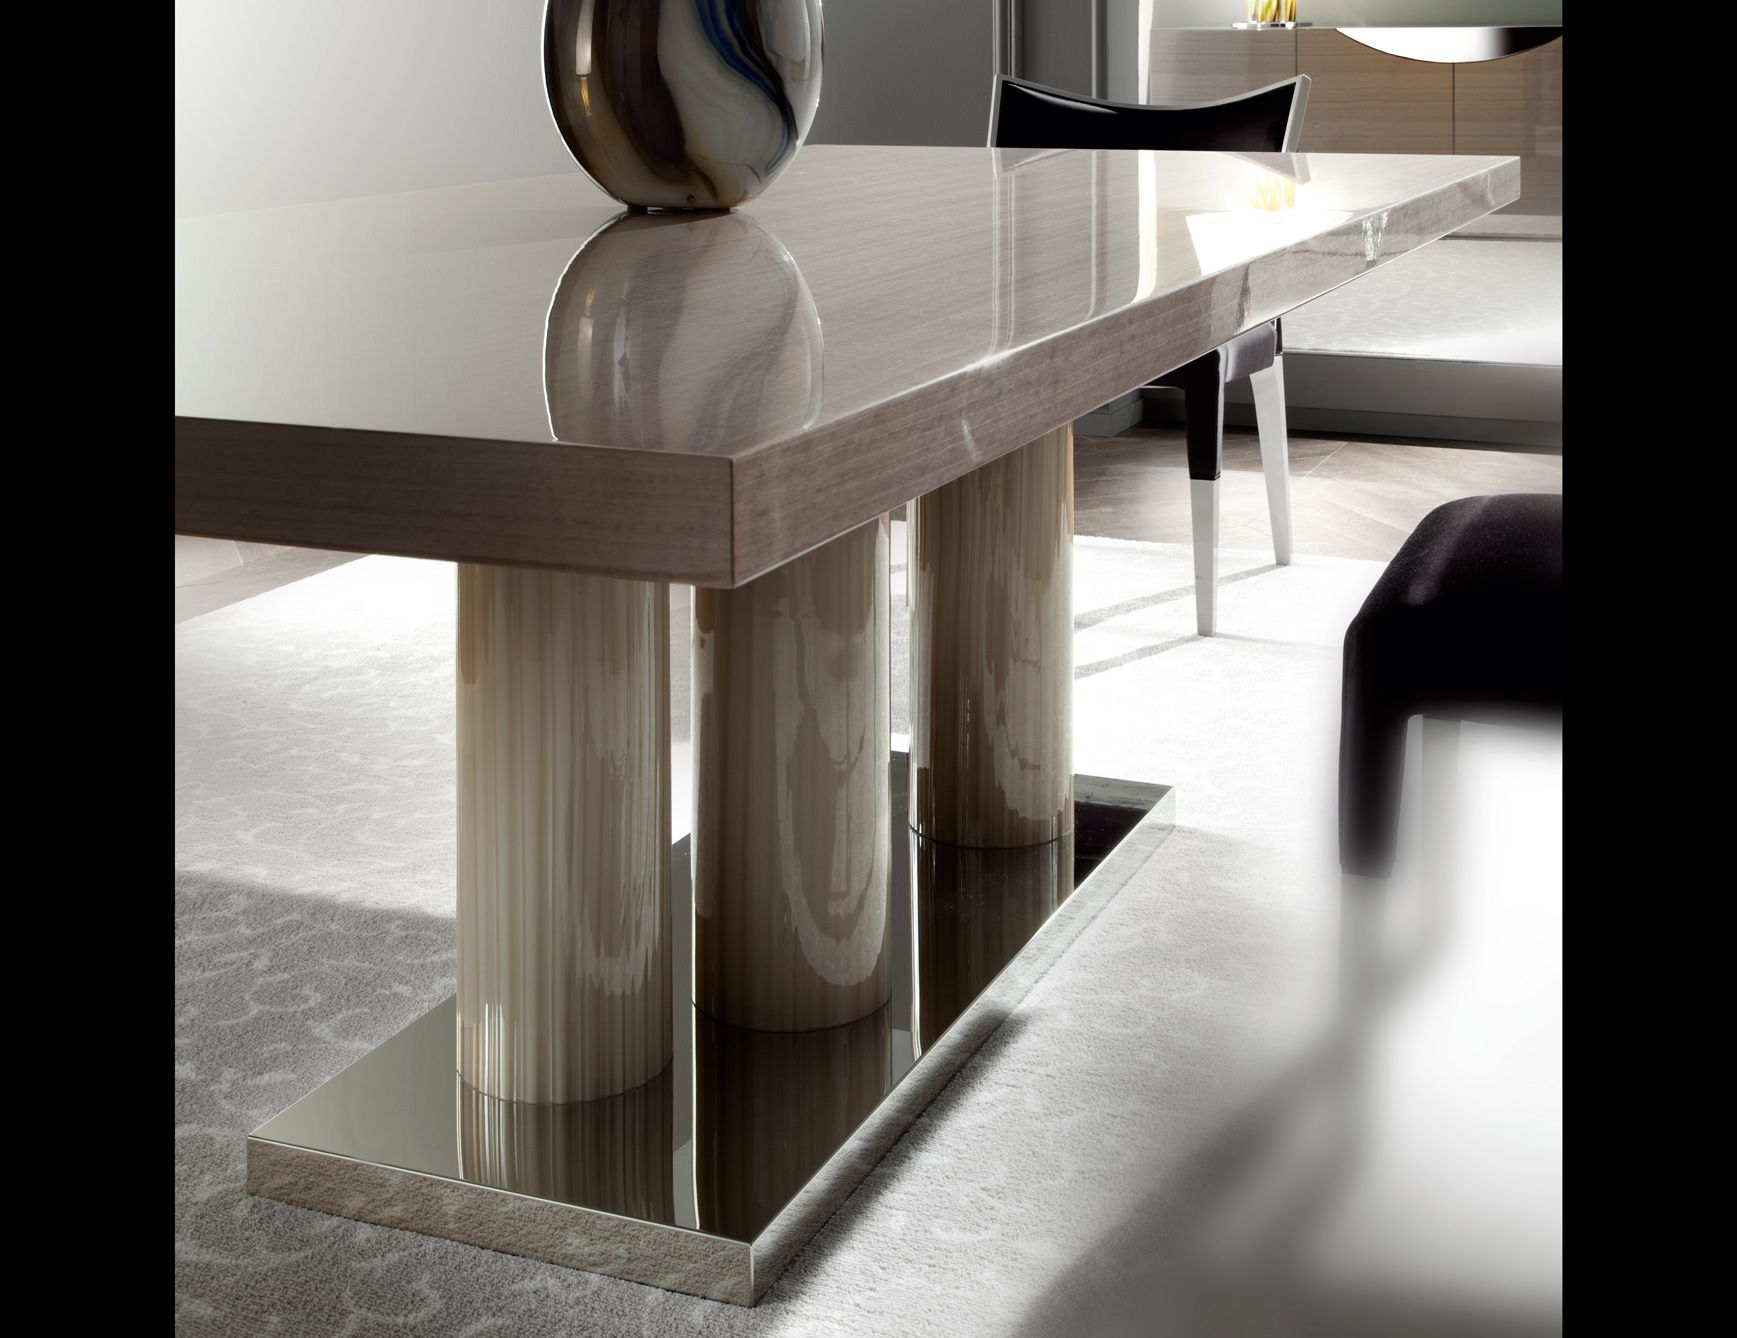 Fenice 9257t Italian Designer Dining Table Handmade And Shown In Wood Finishes Are Available In Walnut Wood Dining Table Luxury Italian Furniture Dining Table